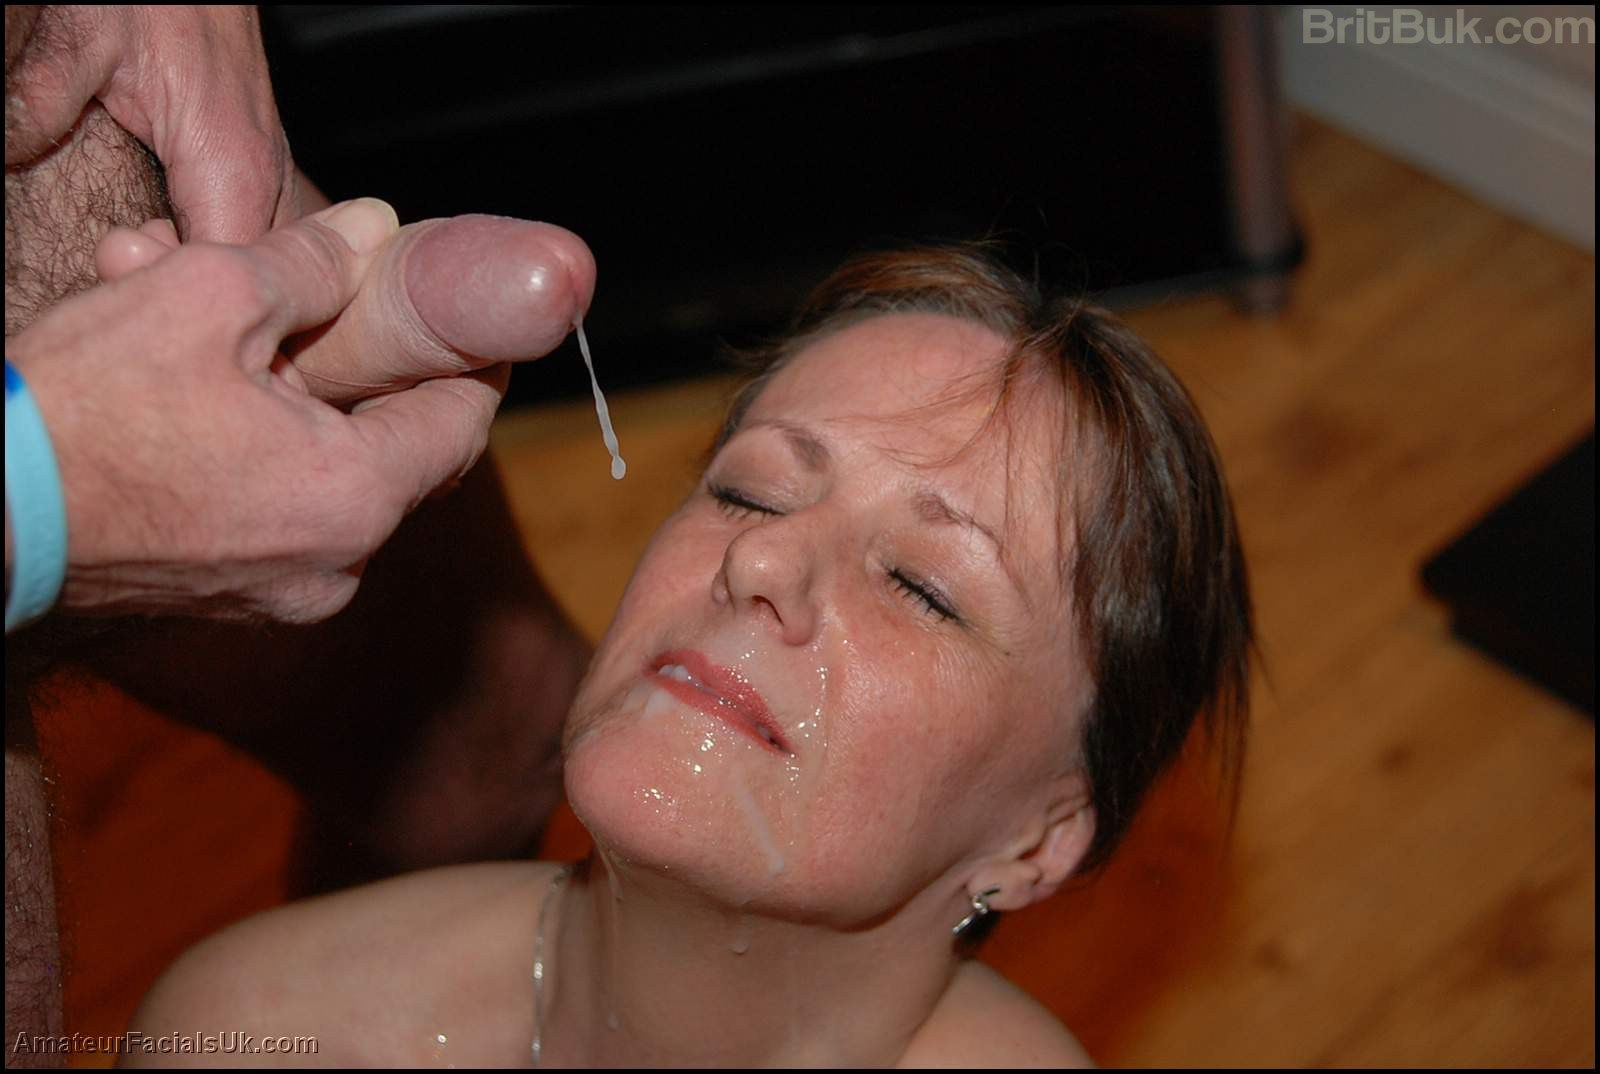 pandora69, uk milf gilf who absolutely loves bukkake